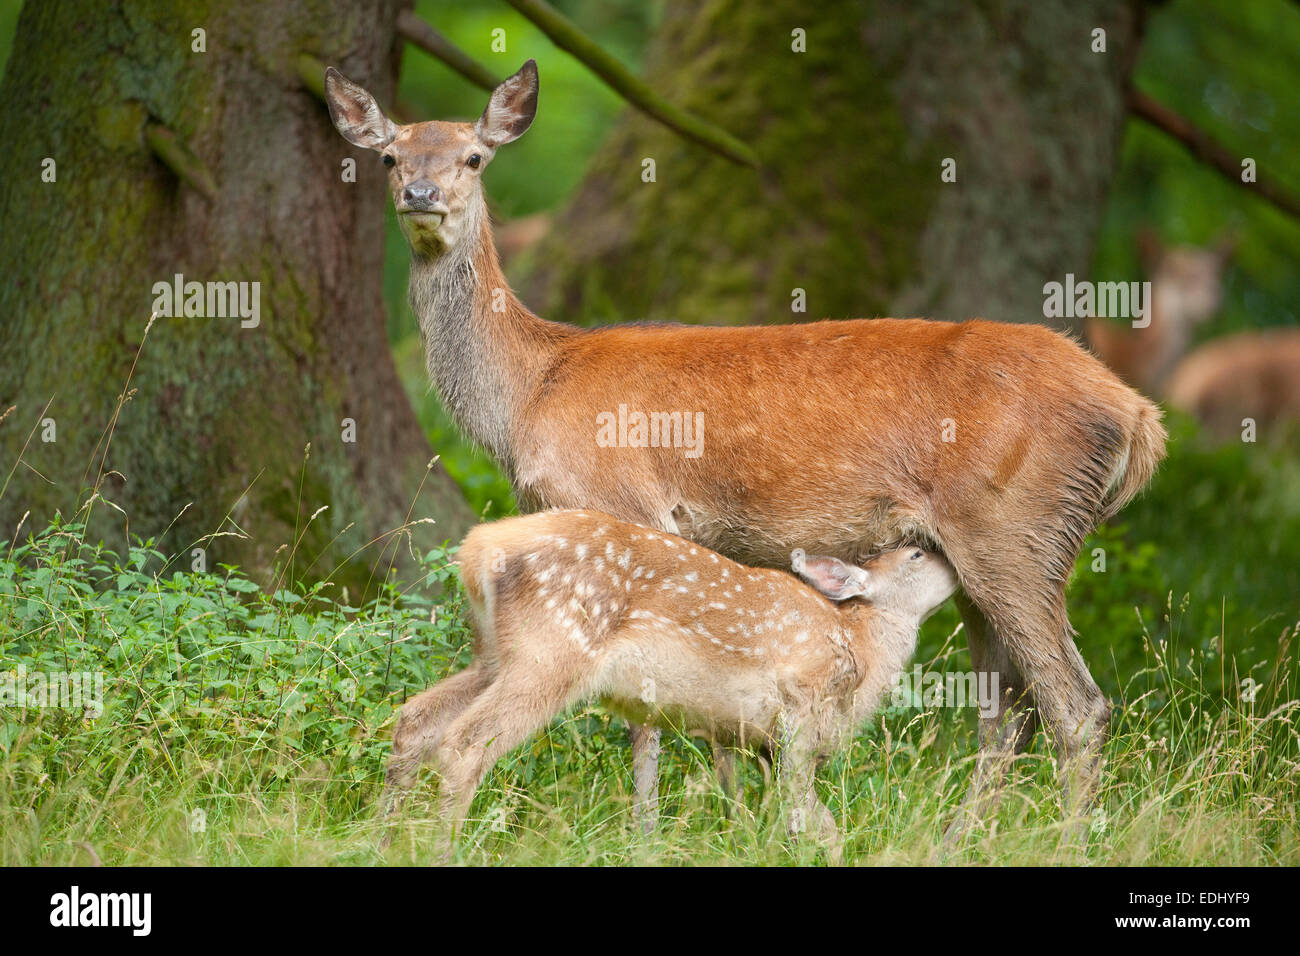 Red Deer (Cervus elaphus), hind with suckling fawn, captive, Bavaria, Germany - Stock Image